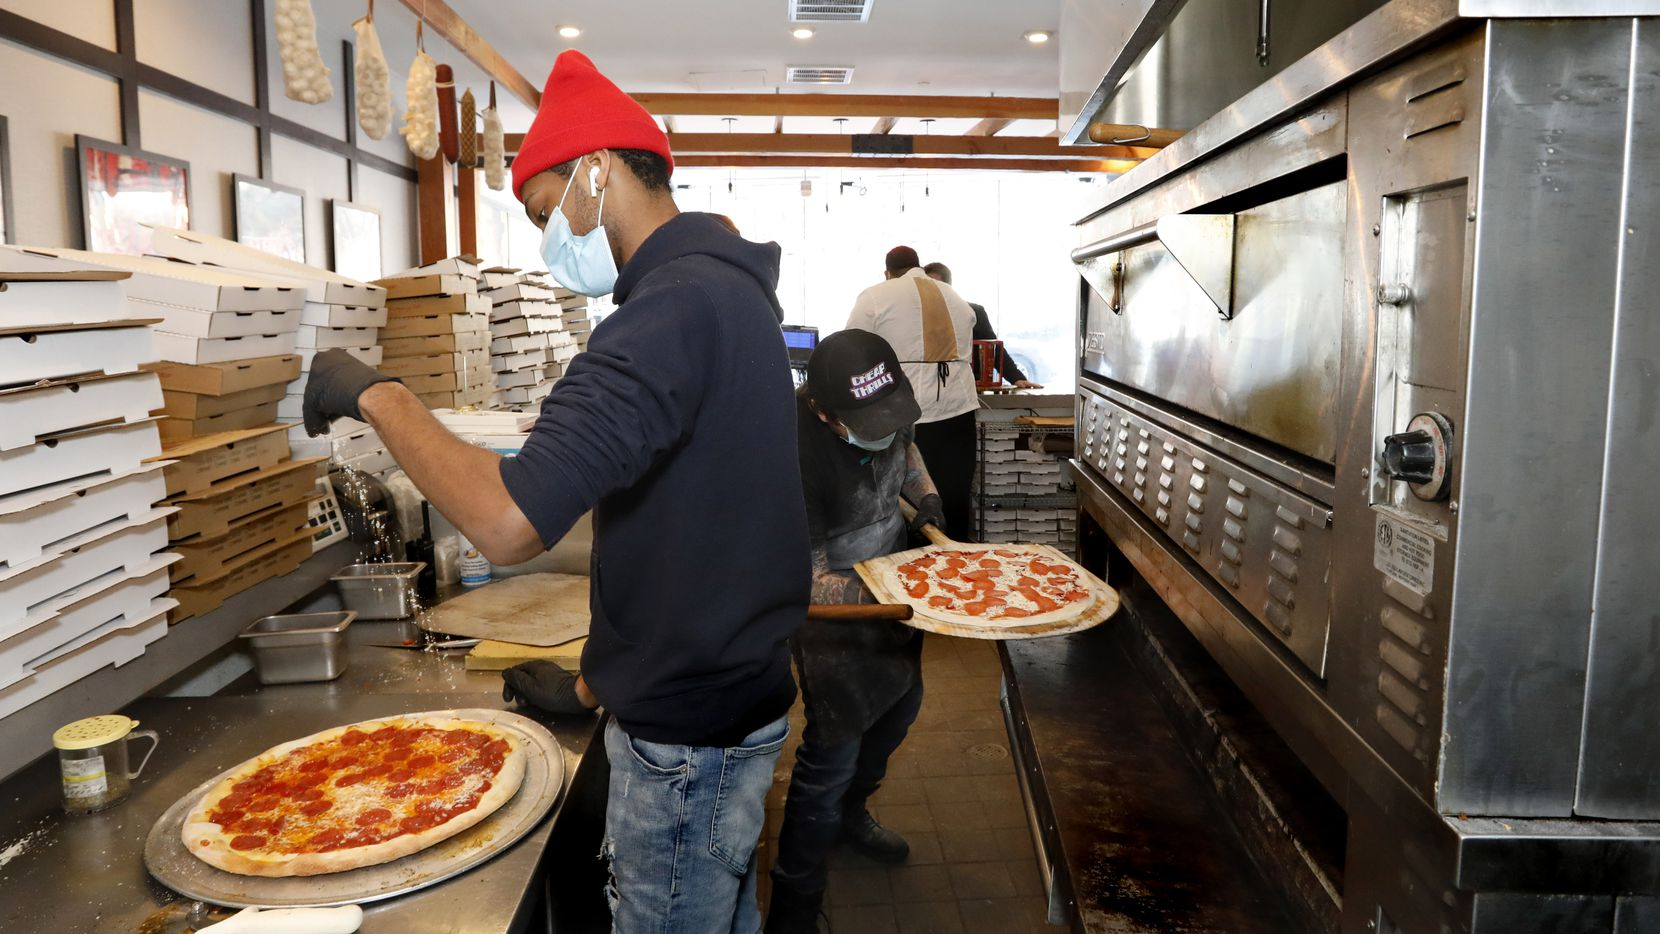 Jalen Holloway, left, puts cheese on a pizza as Jacob Walker, right, puts a pepperoni pizza in the oven at Sfereco in the Statler hotel on Friday, February 19, 2021, in downtown Dallas. The restaurant continued to sell food during the winter storm, when nearly every other restaurant in Dallas closed for at least one day.